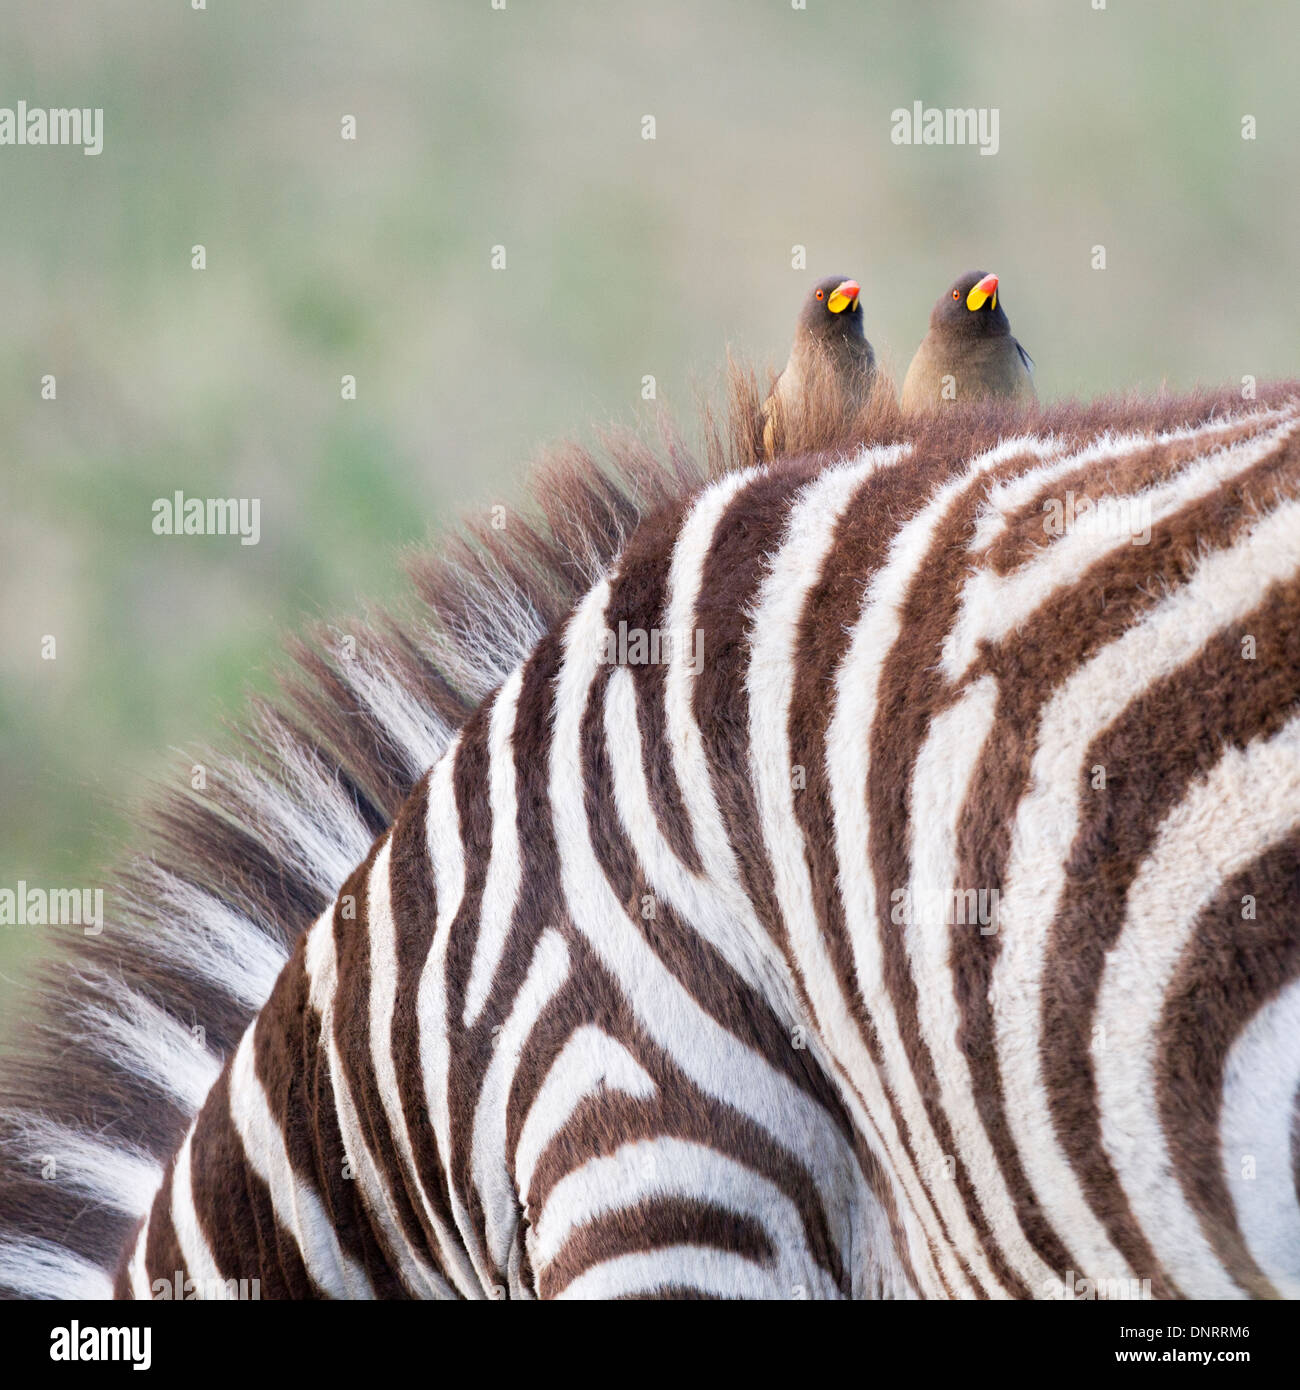 Yellow-billed oxpeckers on zebra in Kenya - Stock Image